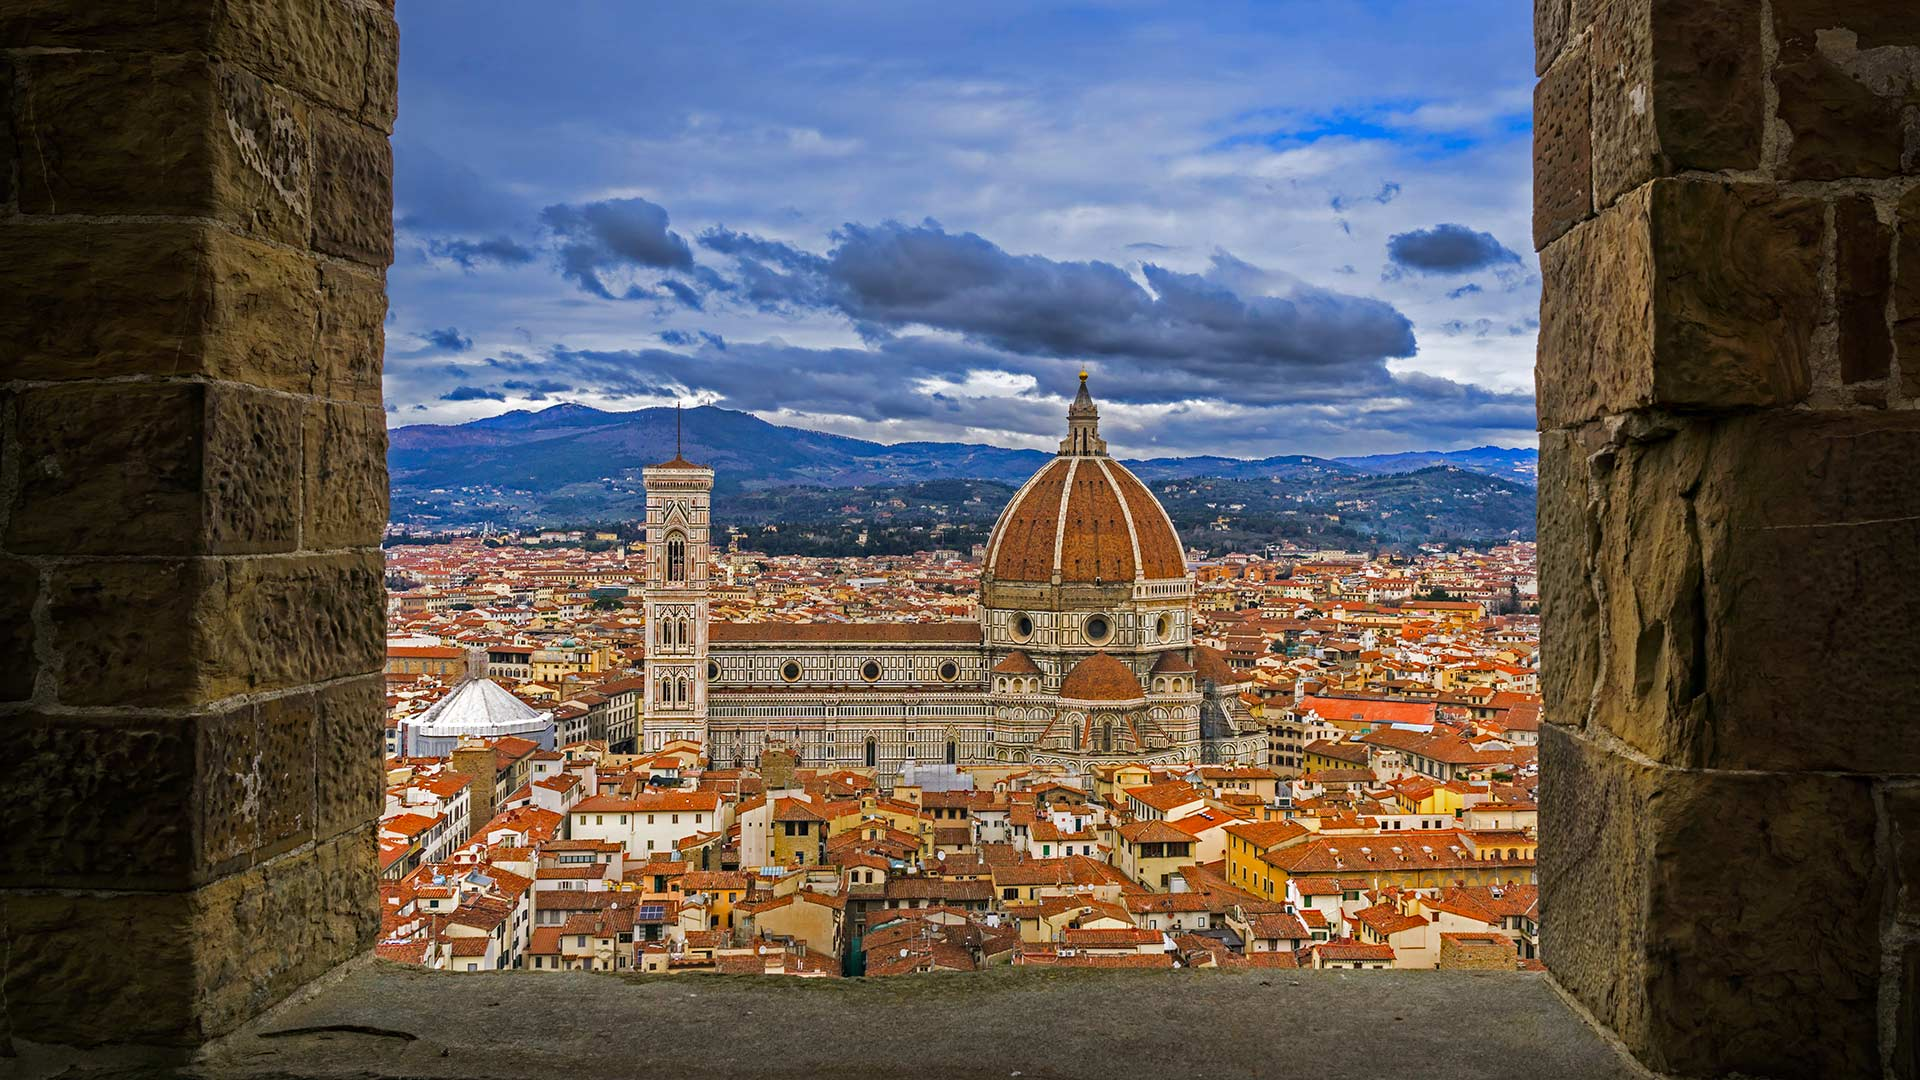 View of the Florence Cathedral from the tower of Palazzo Vecchio in Florence, Italy (© Insung Choi/Tandem Stills + Motion)